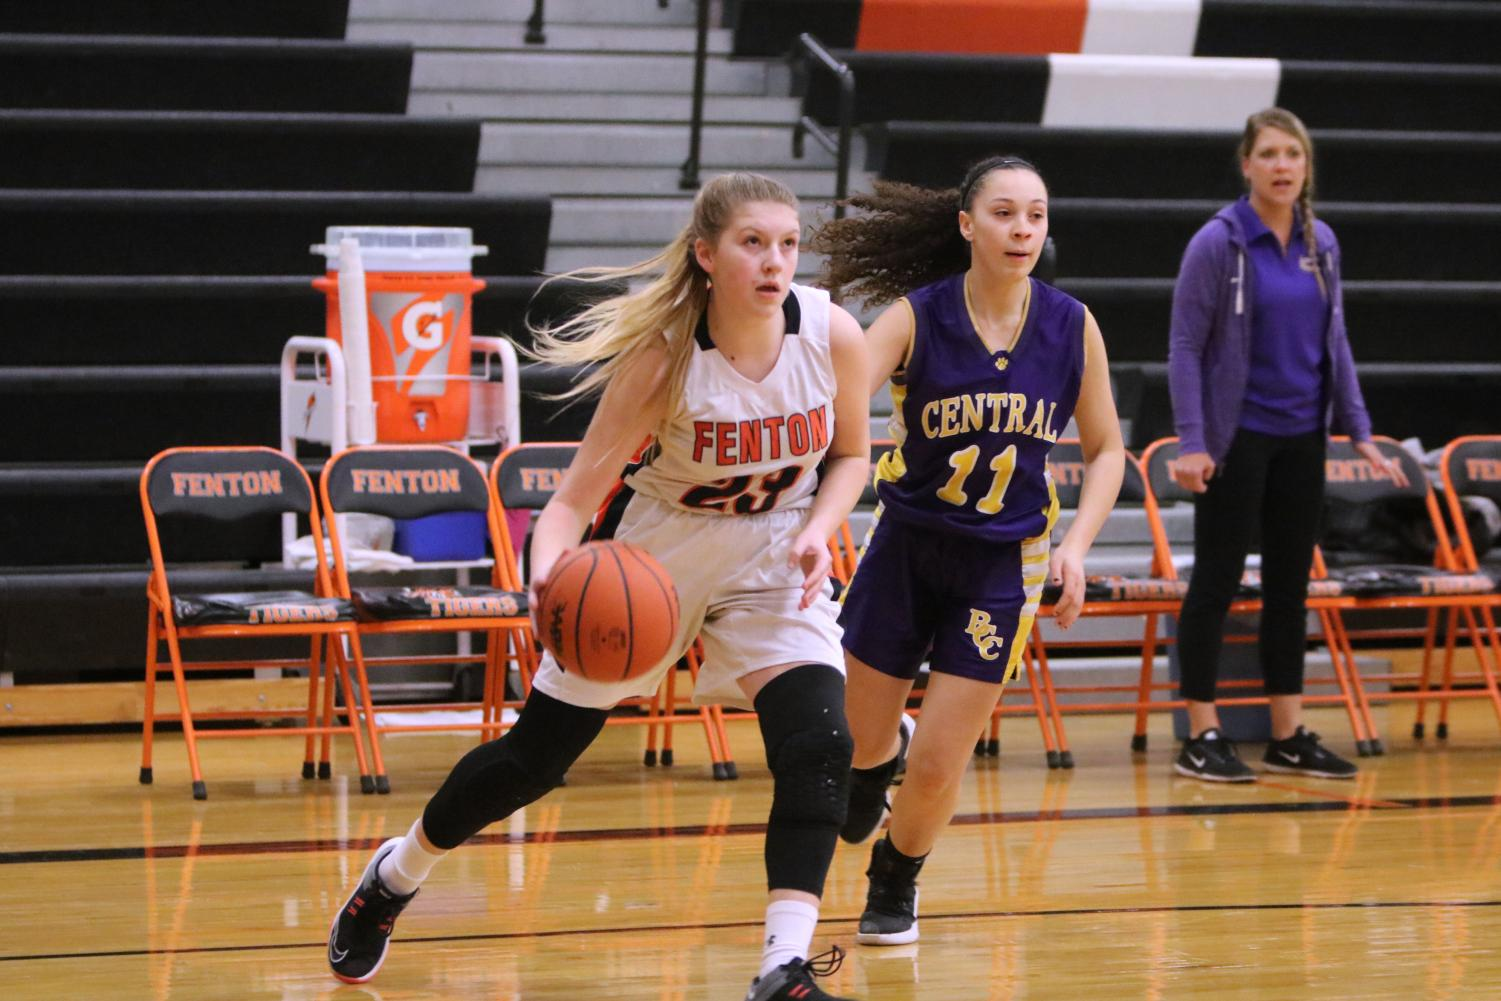 Freshman Alexandra Brown prepares to score a point for her team. On Feb. 19 the freshman girls basketball team played Bay City Central at home.